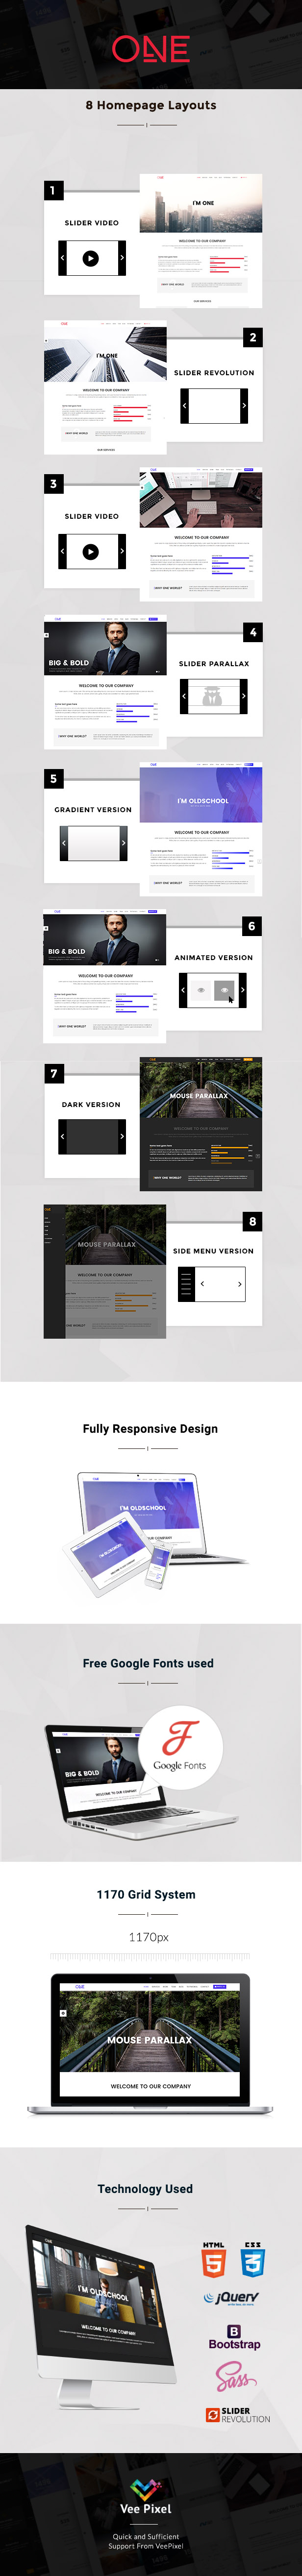 One - Parallax HTML Template - 1